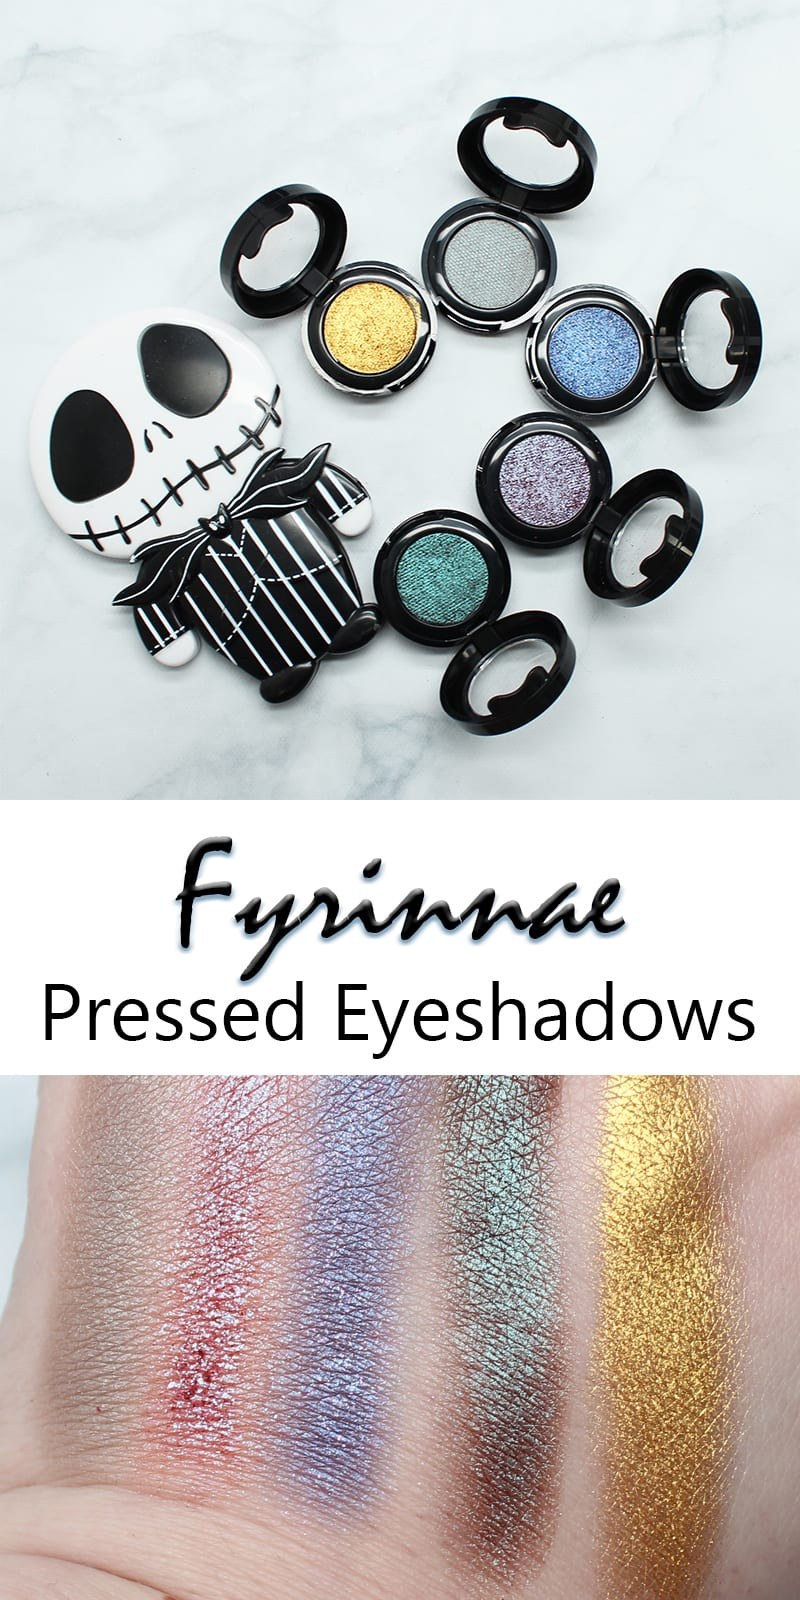 Fyrinnae Pressed Eyeshadows Review and Swatches by Phyrra.net